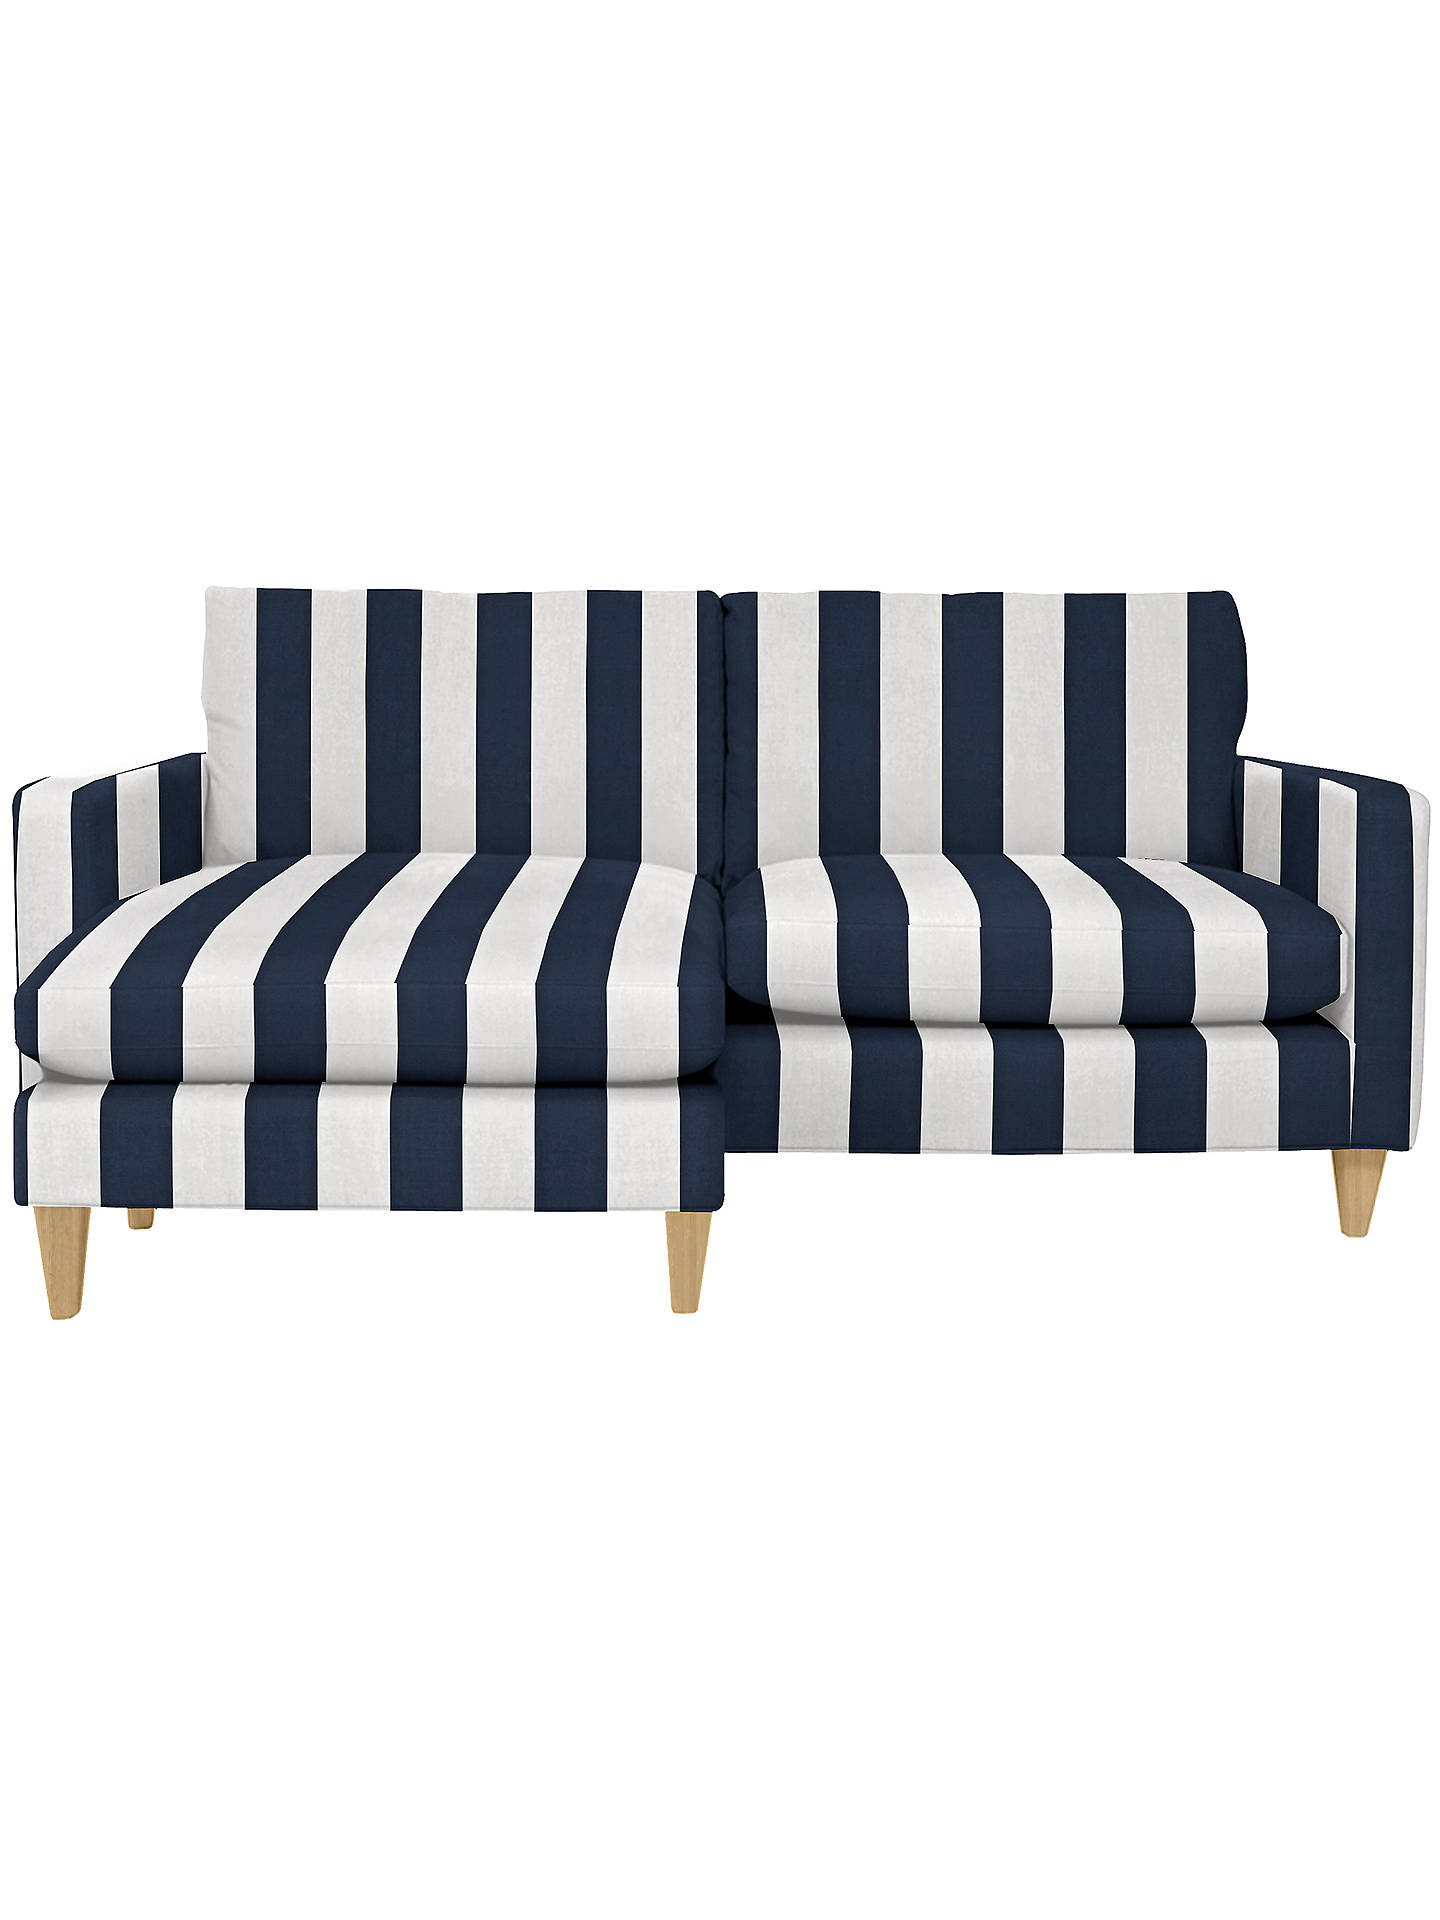 Pleasant John Lewis Bailey Lhf Loose Cover Chaise End Sofa Price Alphanode Cool Chair Designs And Ideas Alphanodeonline